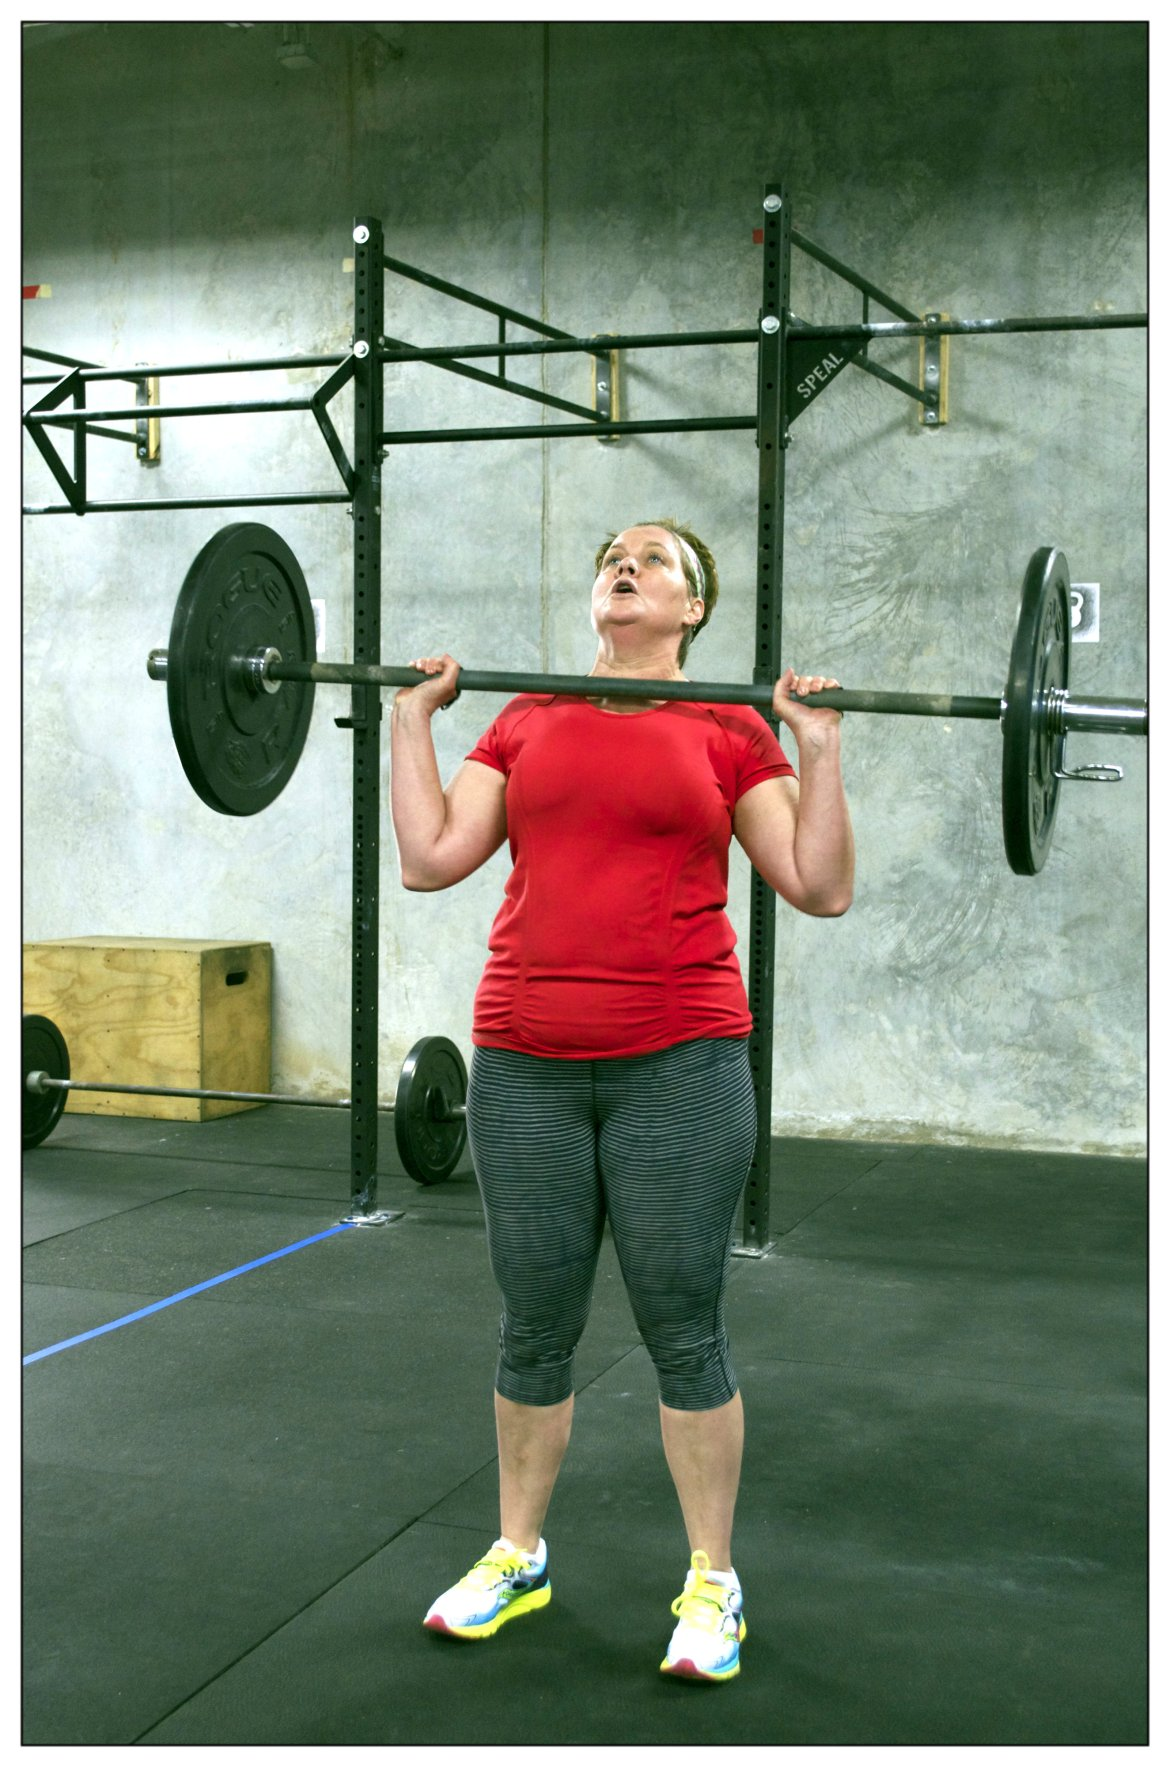 Crossfit Masters Level Competitor, Cathy Lawdanski, performing the Push Press